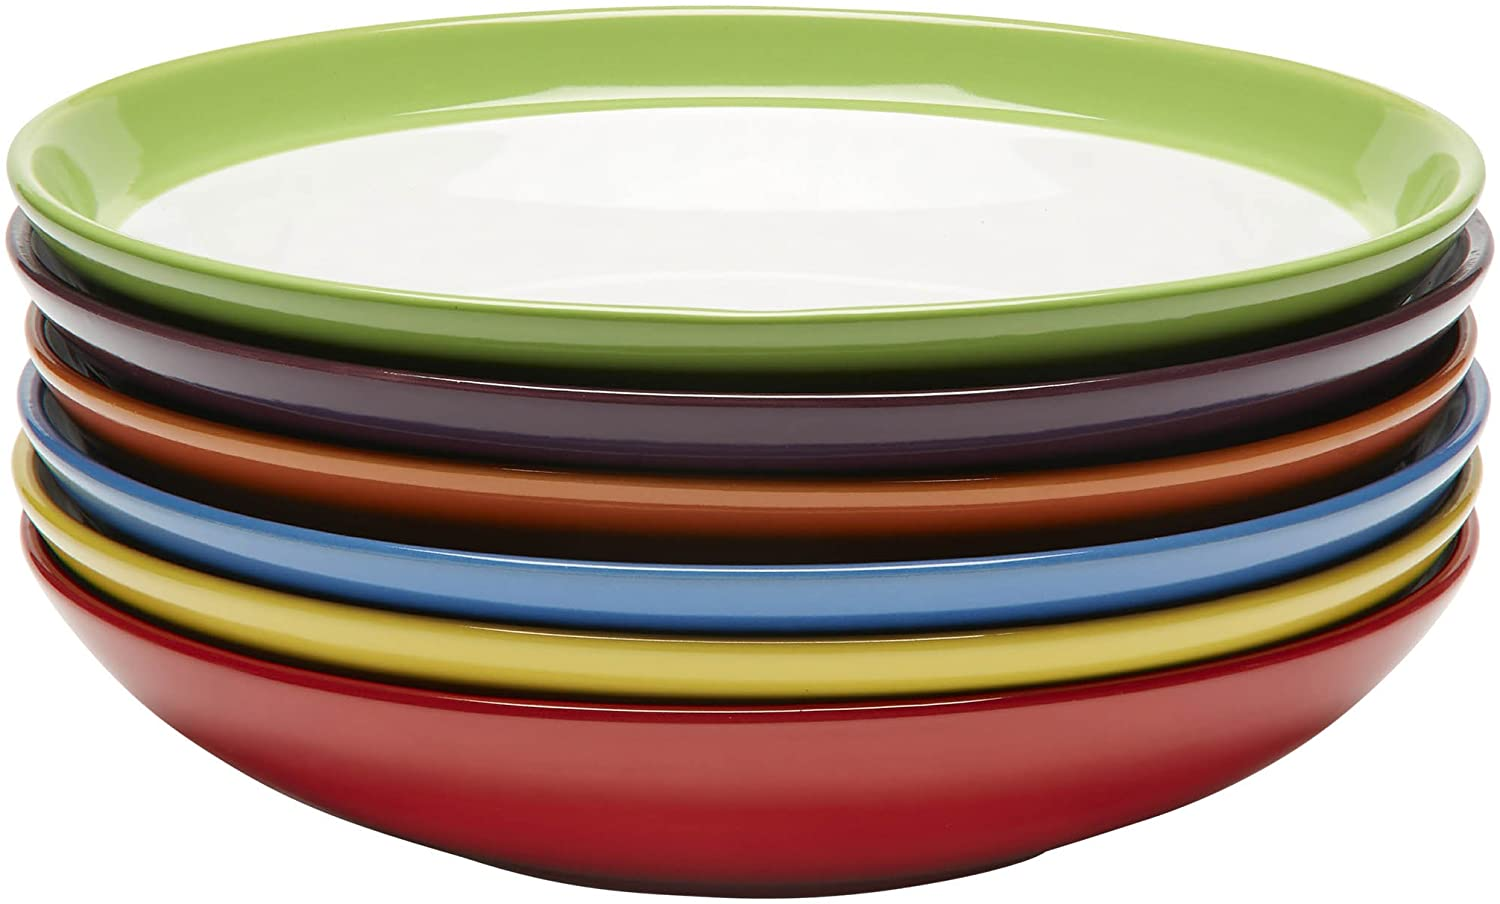 Pasta /& Salad Plate Ceramic Plate Set of 6 Colorful Meal Stoneware Plates Home